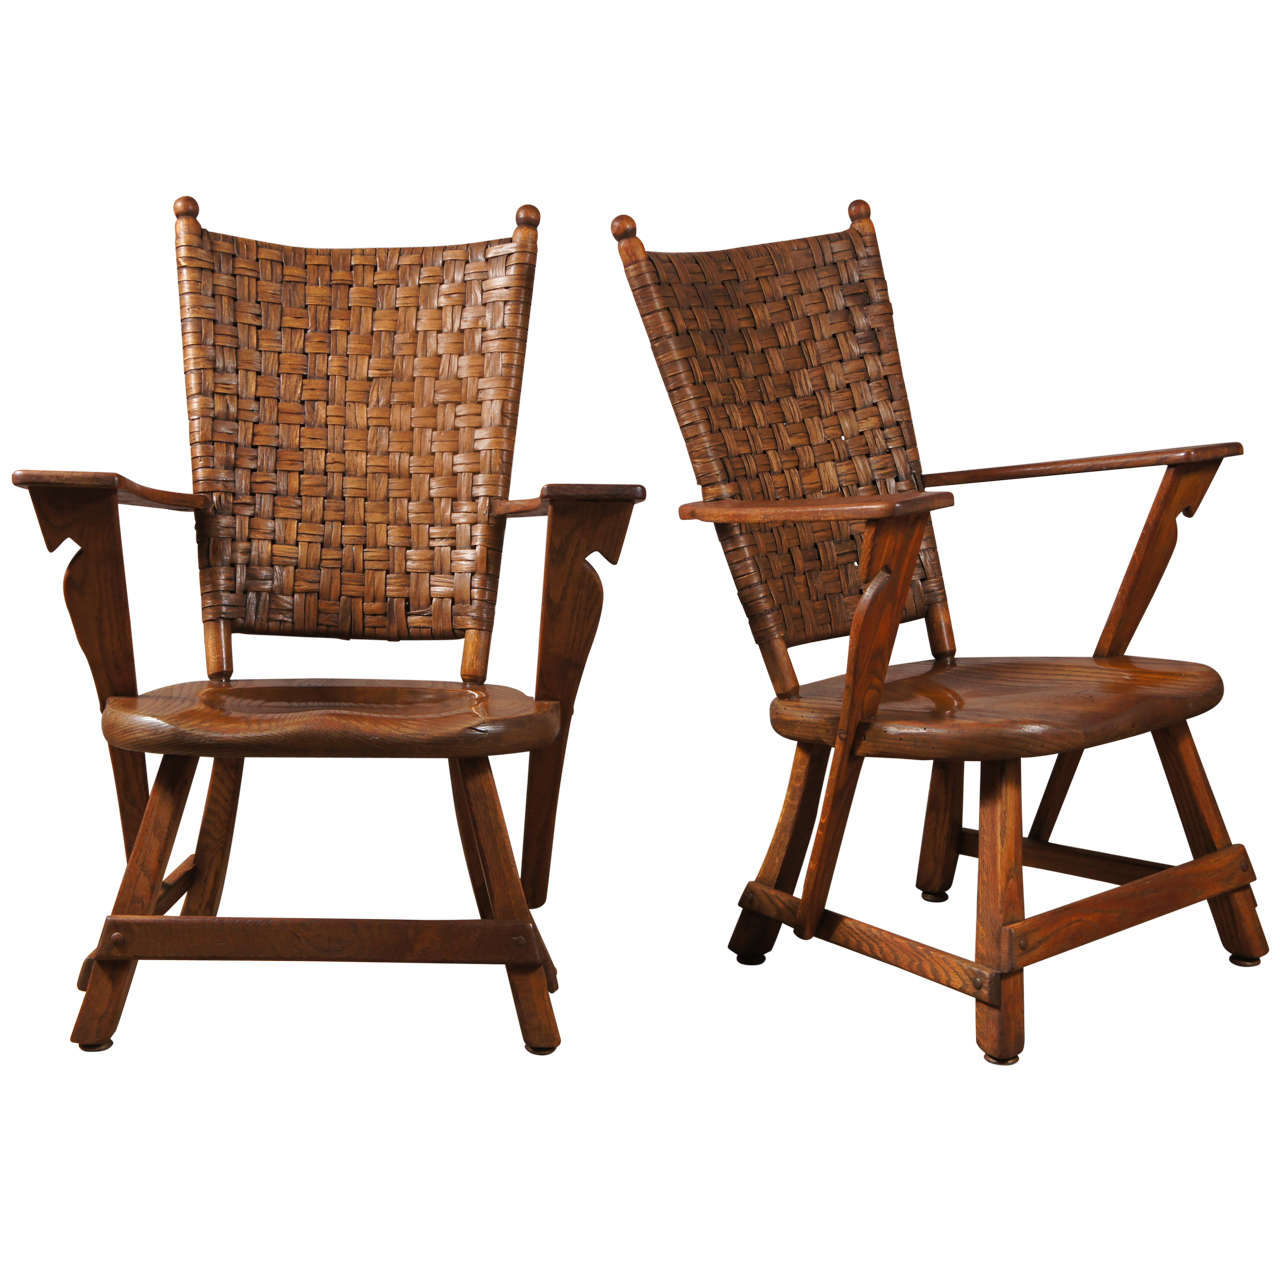 hickory chairs for sale designer chair covers to go instagram pair old arm at 1stdibs